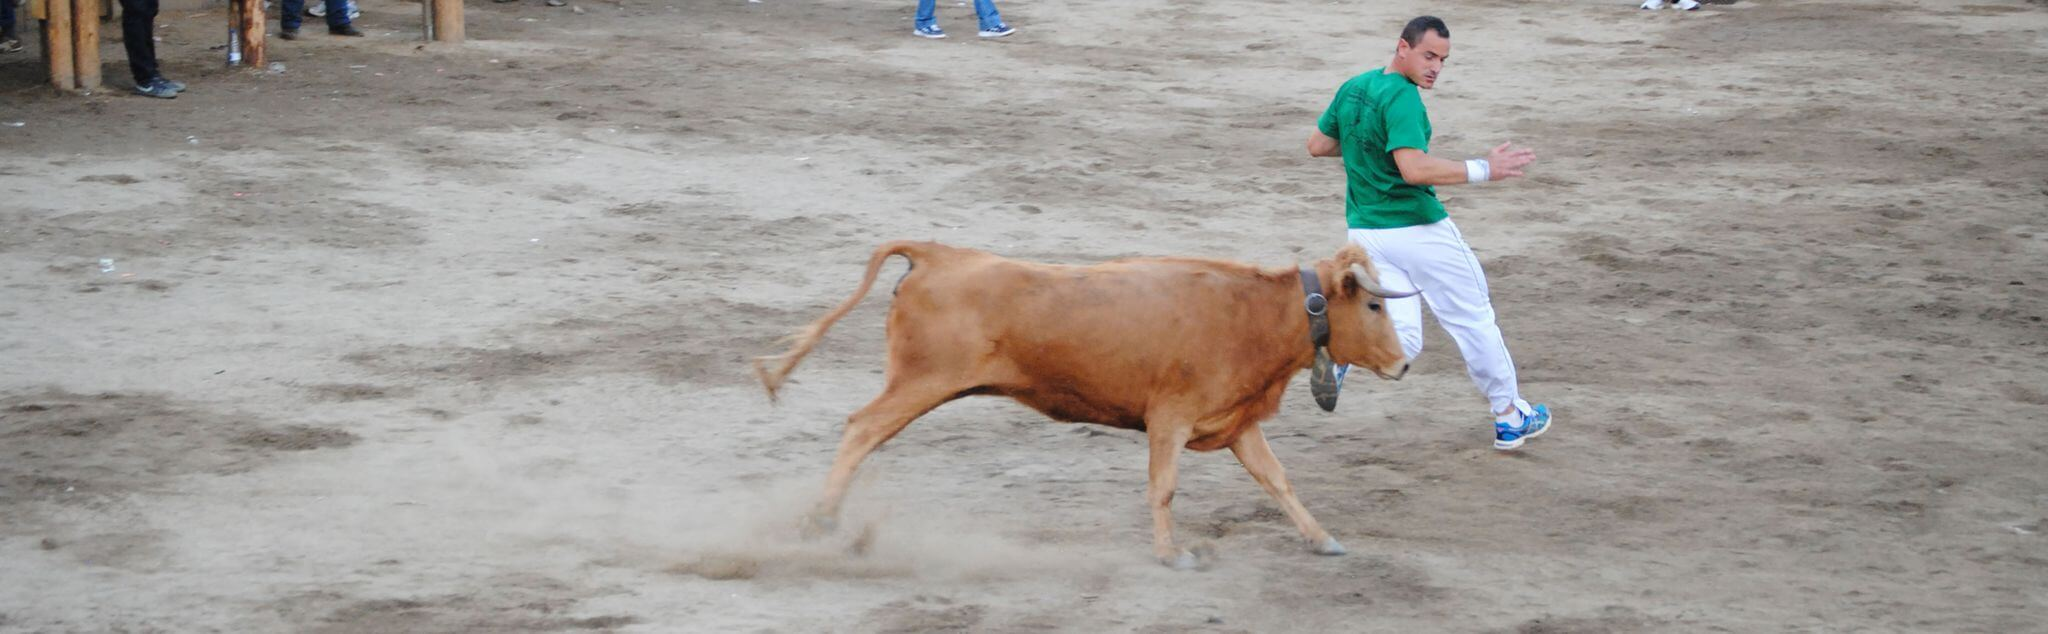 Bull Fighting in Miraflores De La Sierra